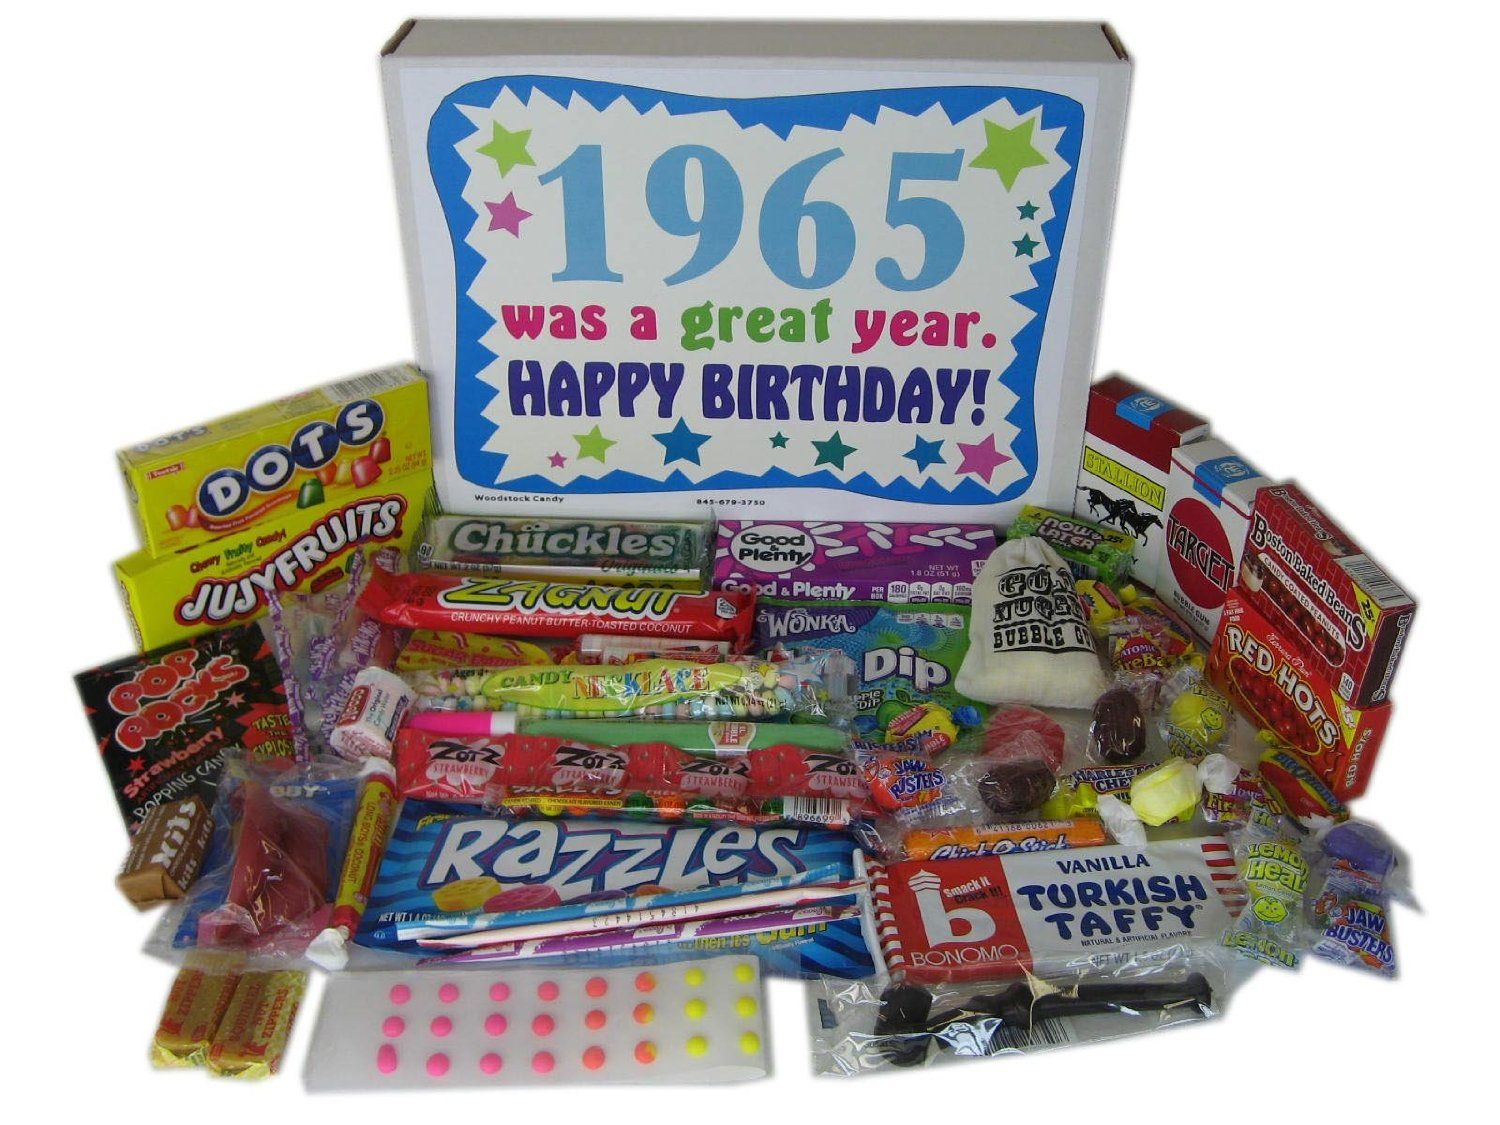 Amazon 1965 50th Birthday Gift Basket Box Retro Nostalgic Candy From Childhood Gourmet Gifts Grocery Food